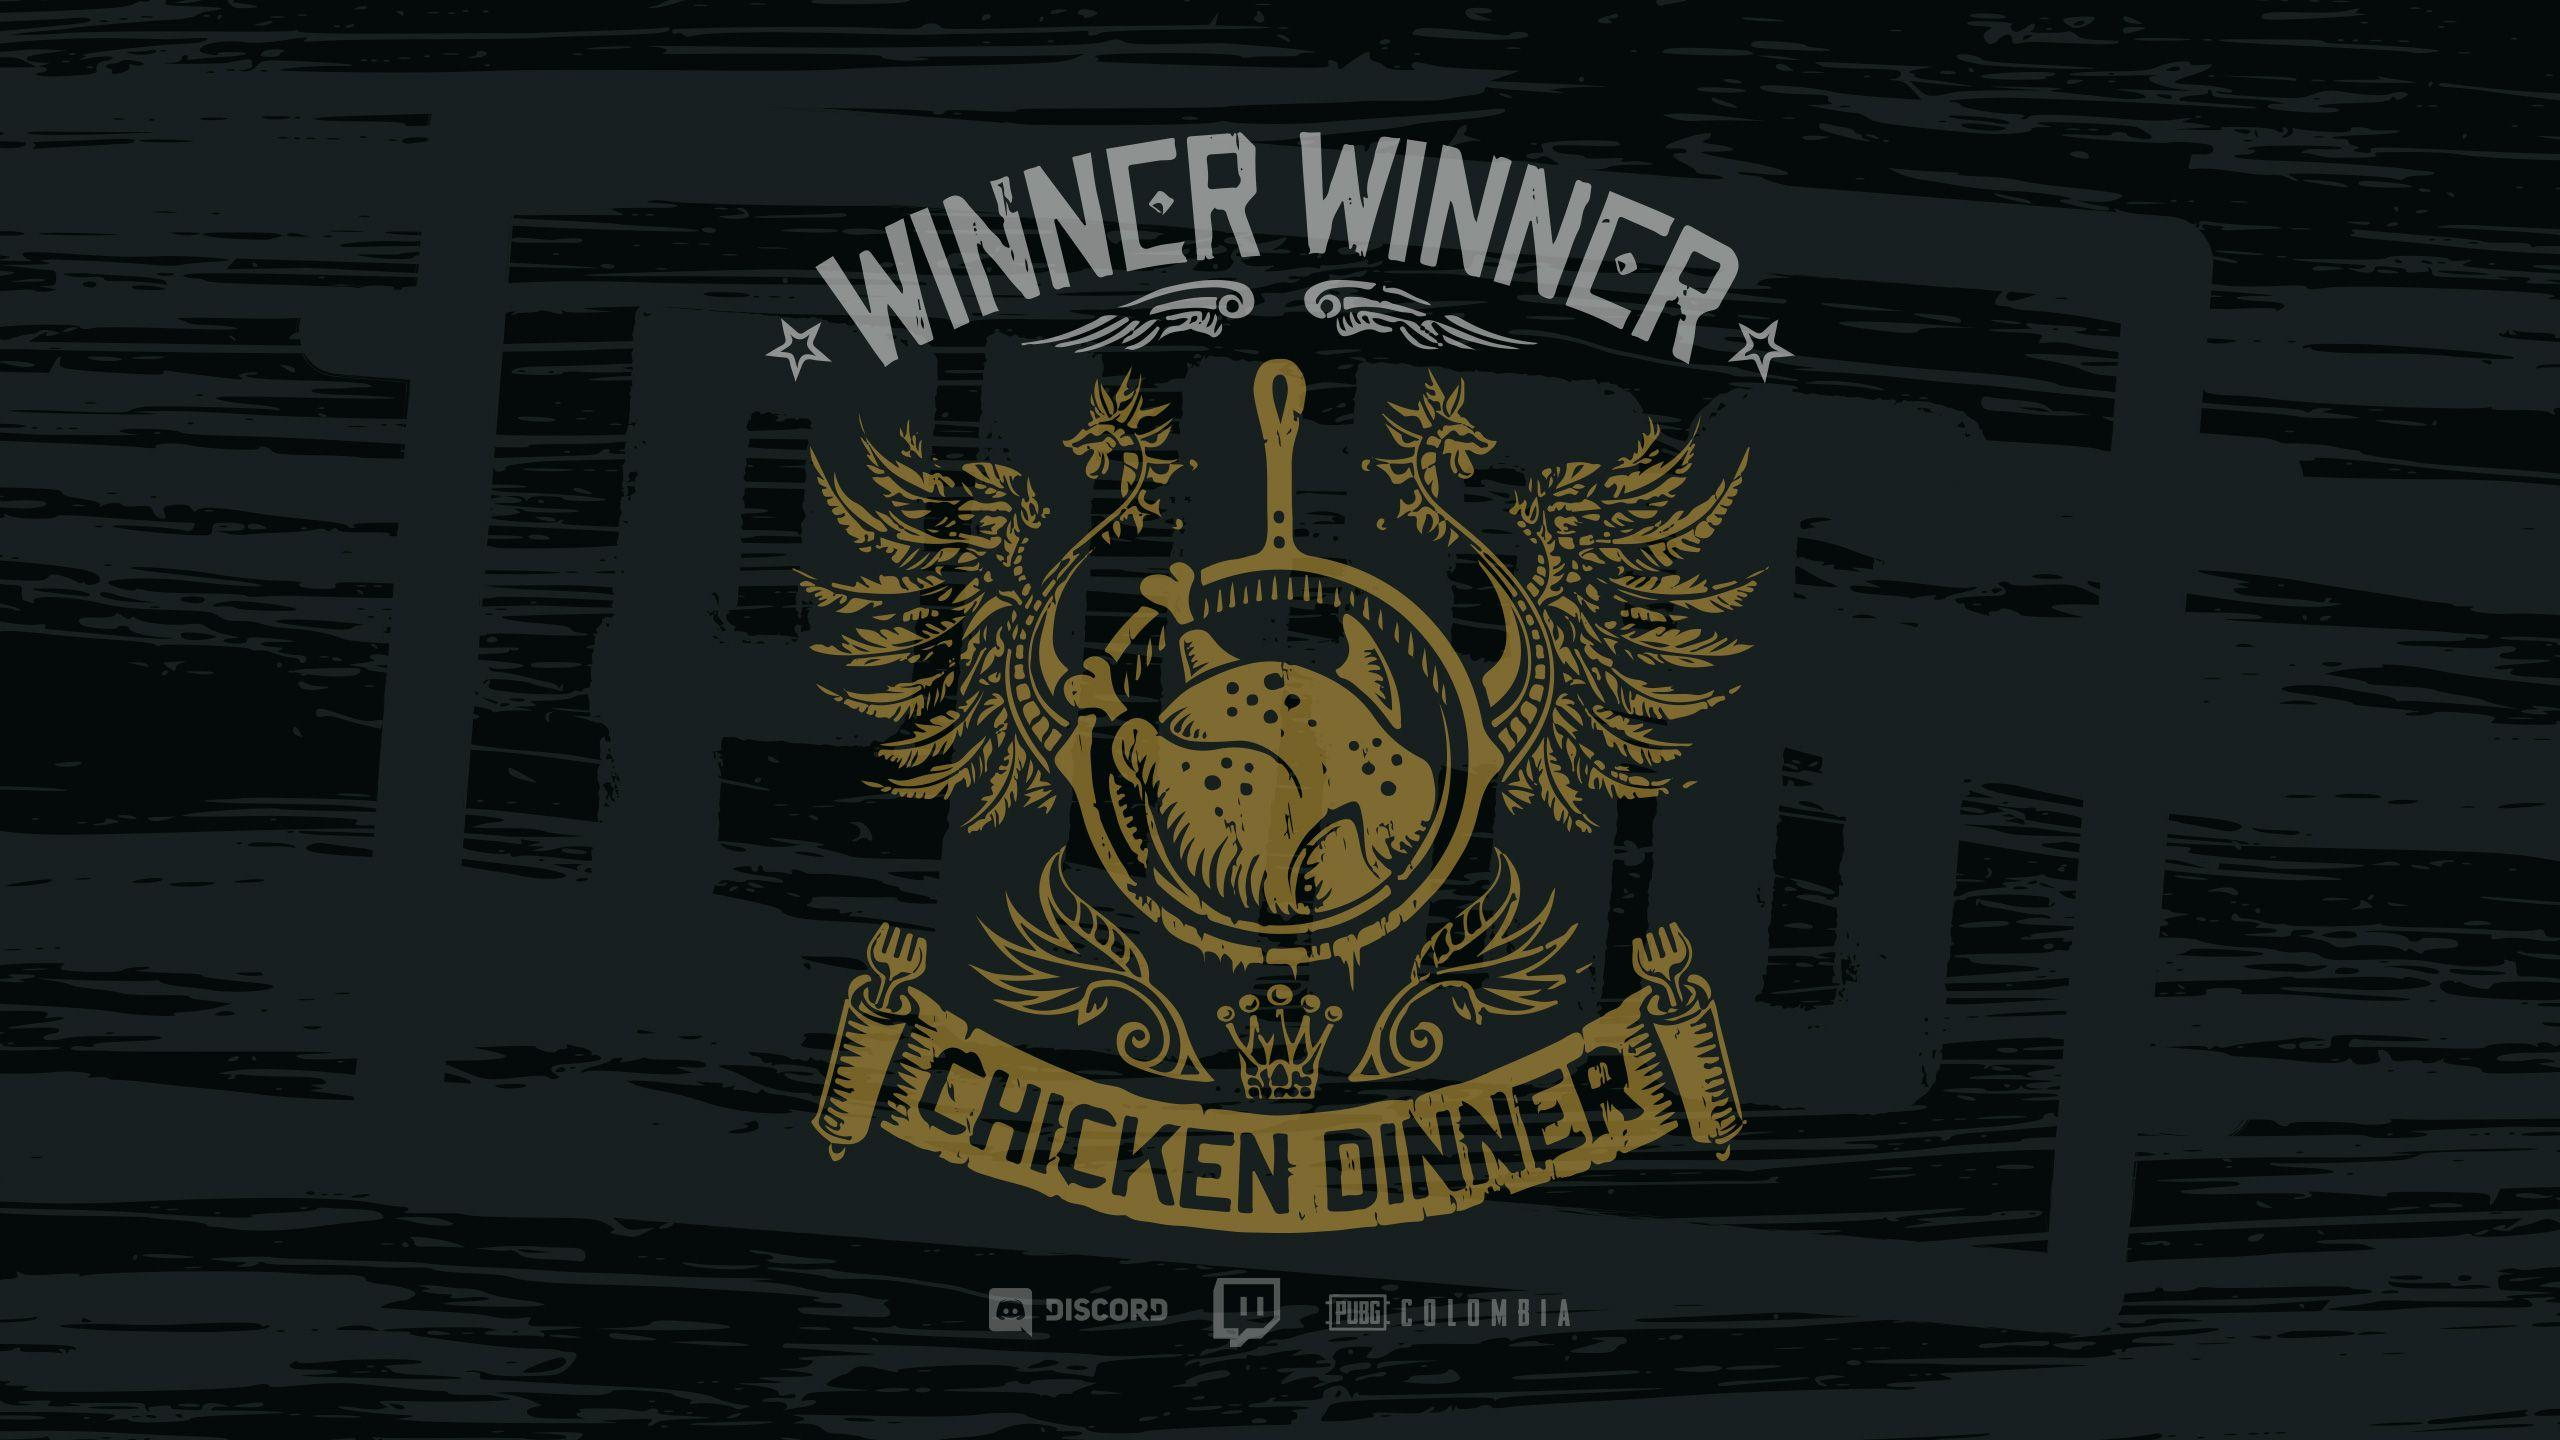 Check Out This Awesome Winner Winner Chicken Dinner: Winner Winner Chicken Dinner Wallpapers